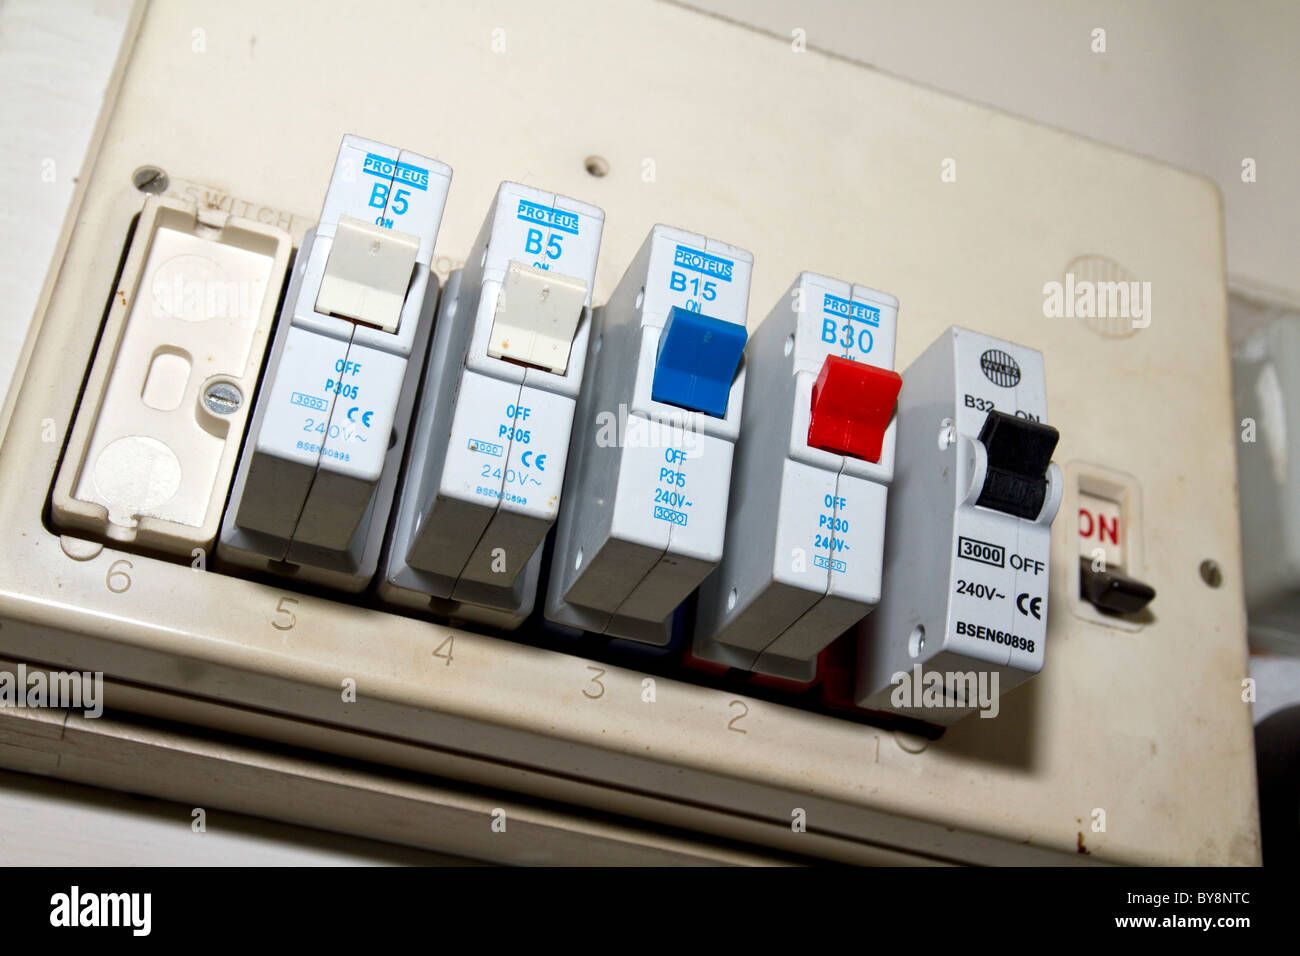 uk old electric fuse box in a london house BY8NTC uk old electric fuse box in a london house stock photo, royalty circuit breakers for old fuse box at bakdesigns.co